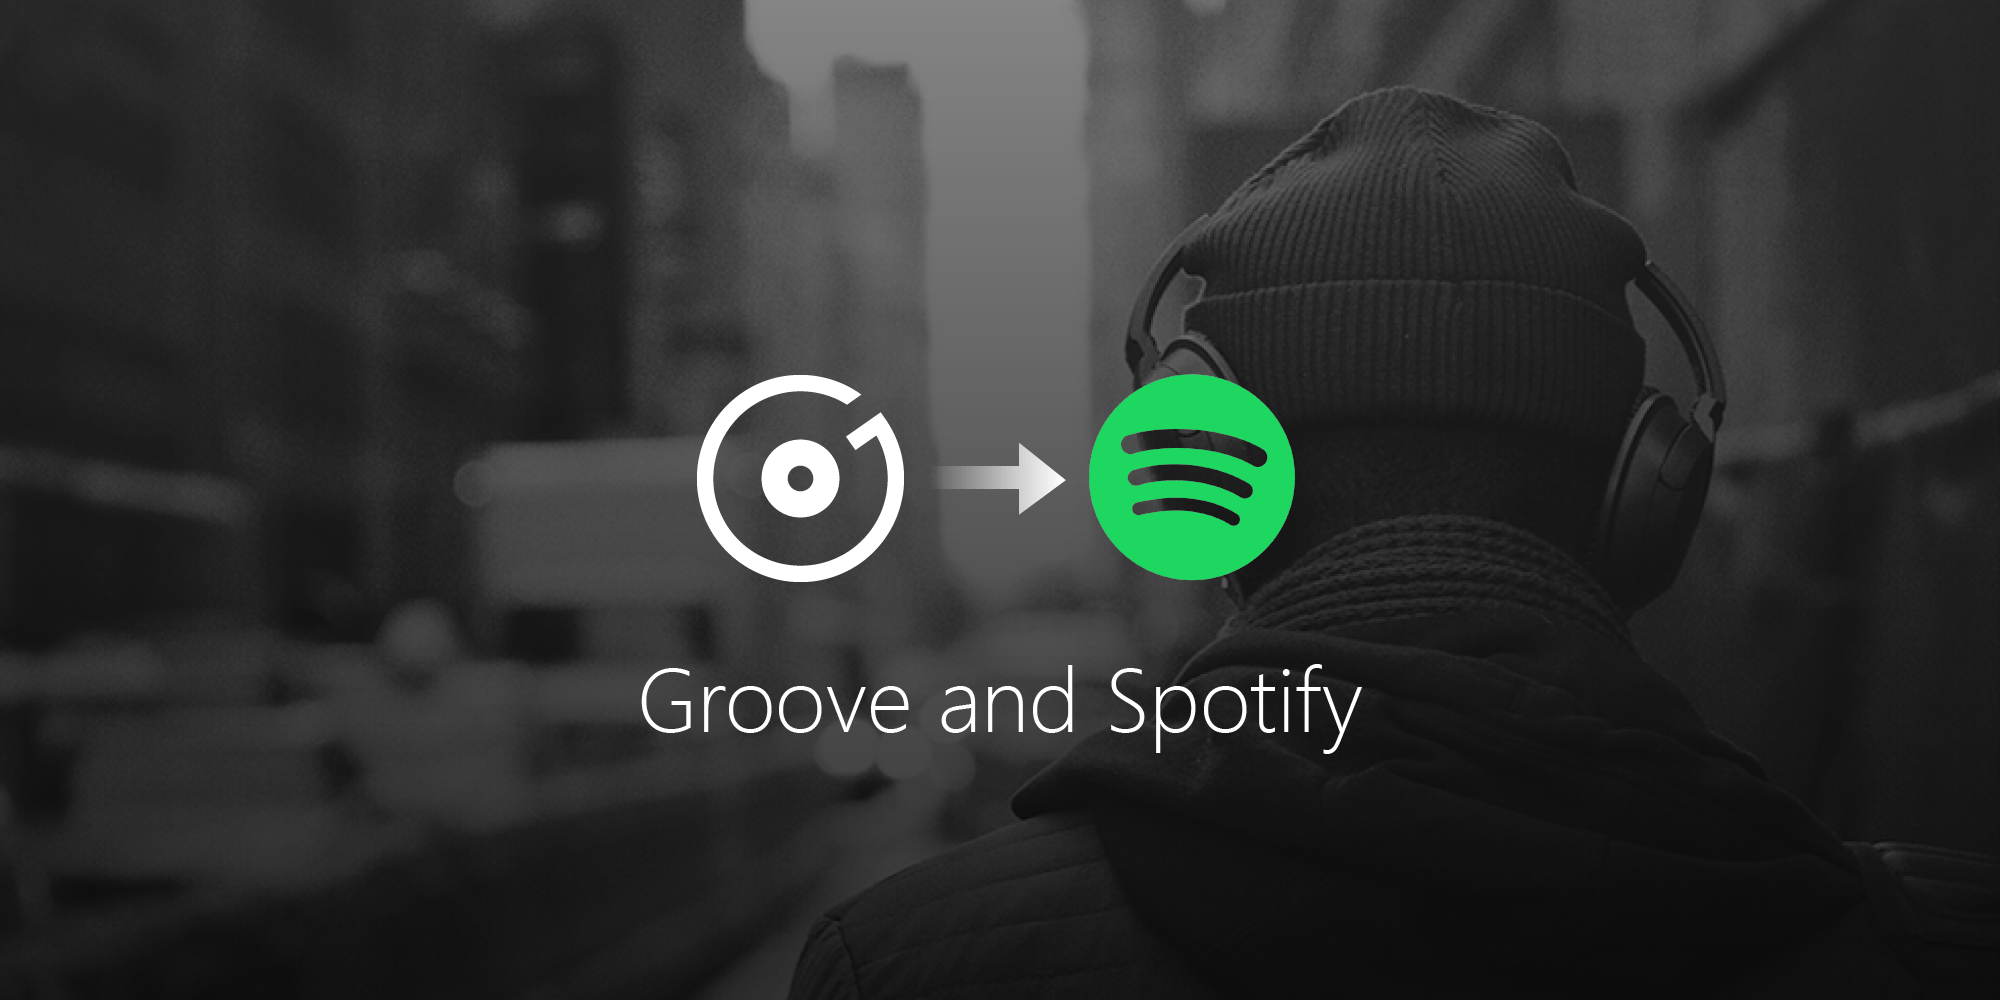 Microsoft Discontinues Groove Music Service, Partners With Spotify